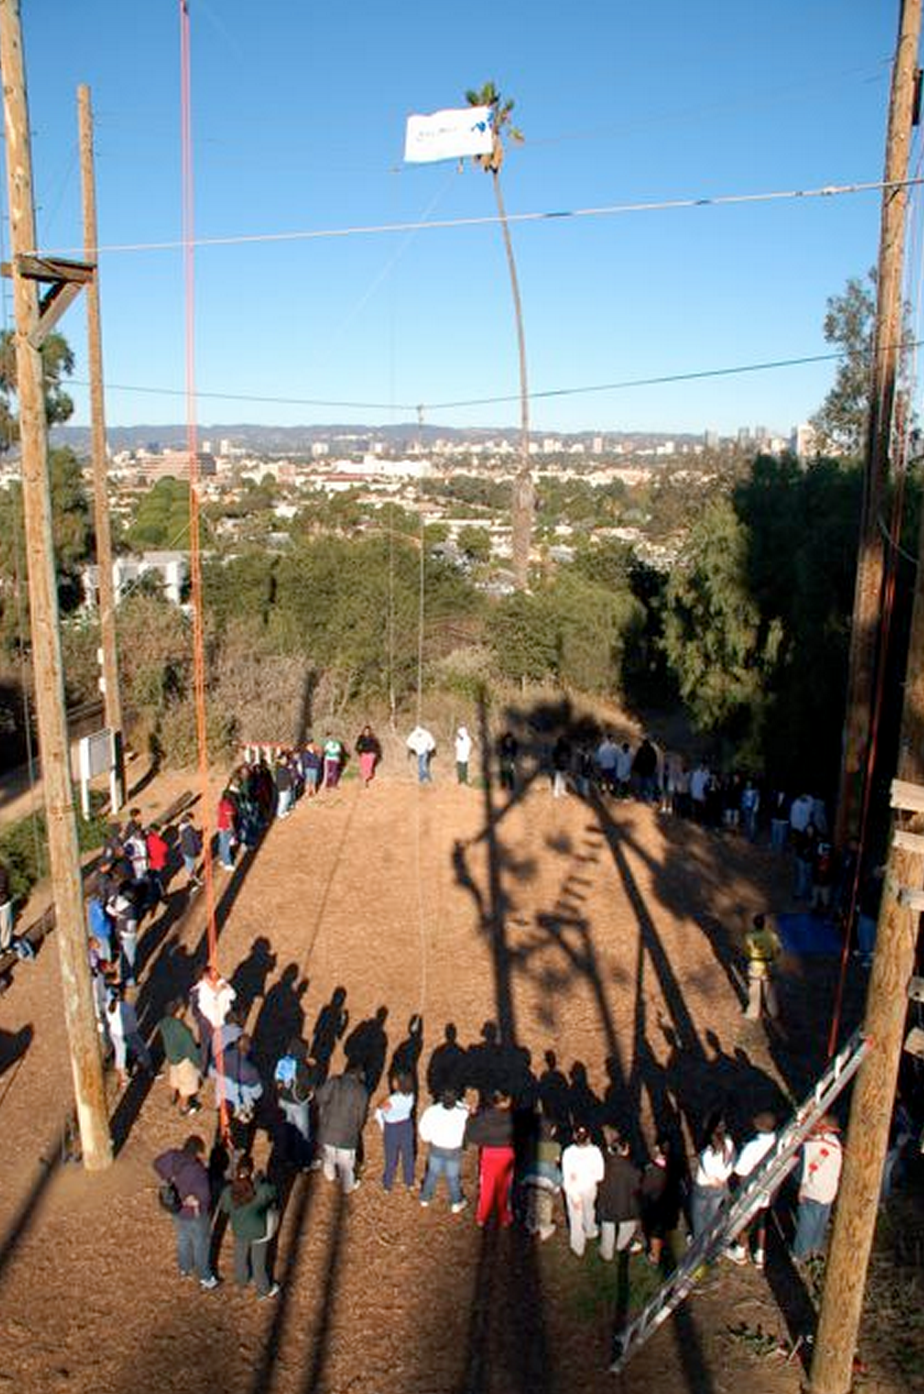 Culver City Park Is Home To A New Open Ropes Course Run By Fulcrum Adventures The Culver City Teambuilding High Ropes Cha Culver City Park City Nature Trail